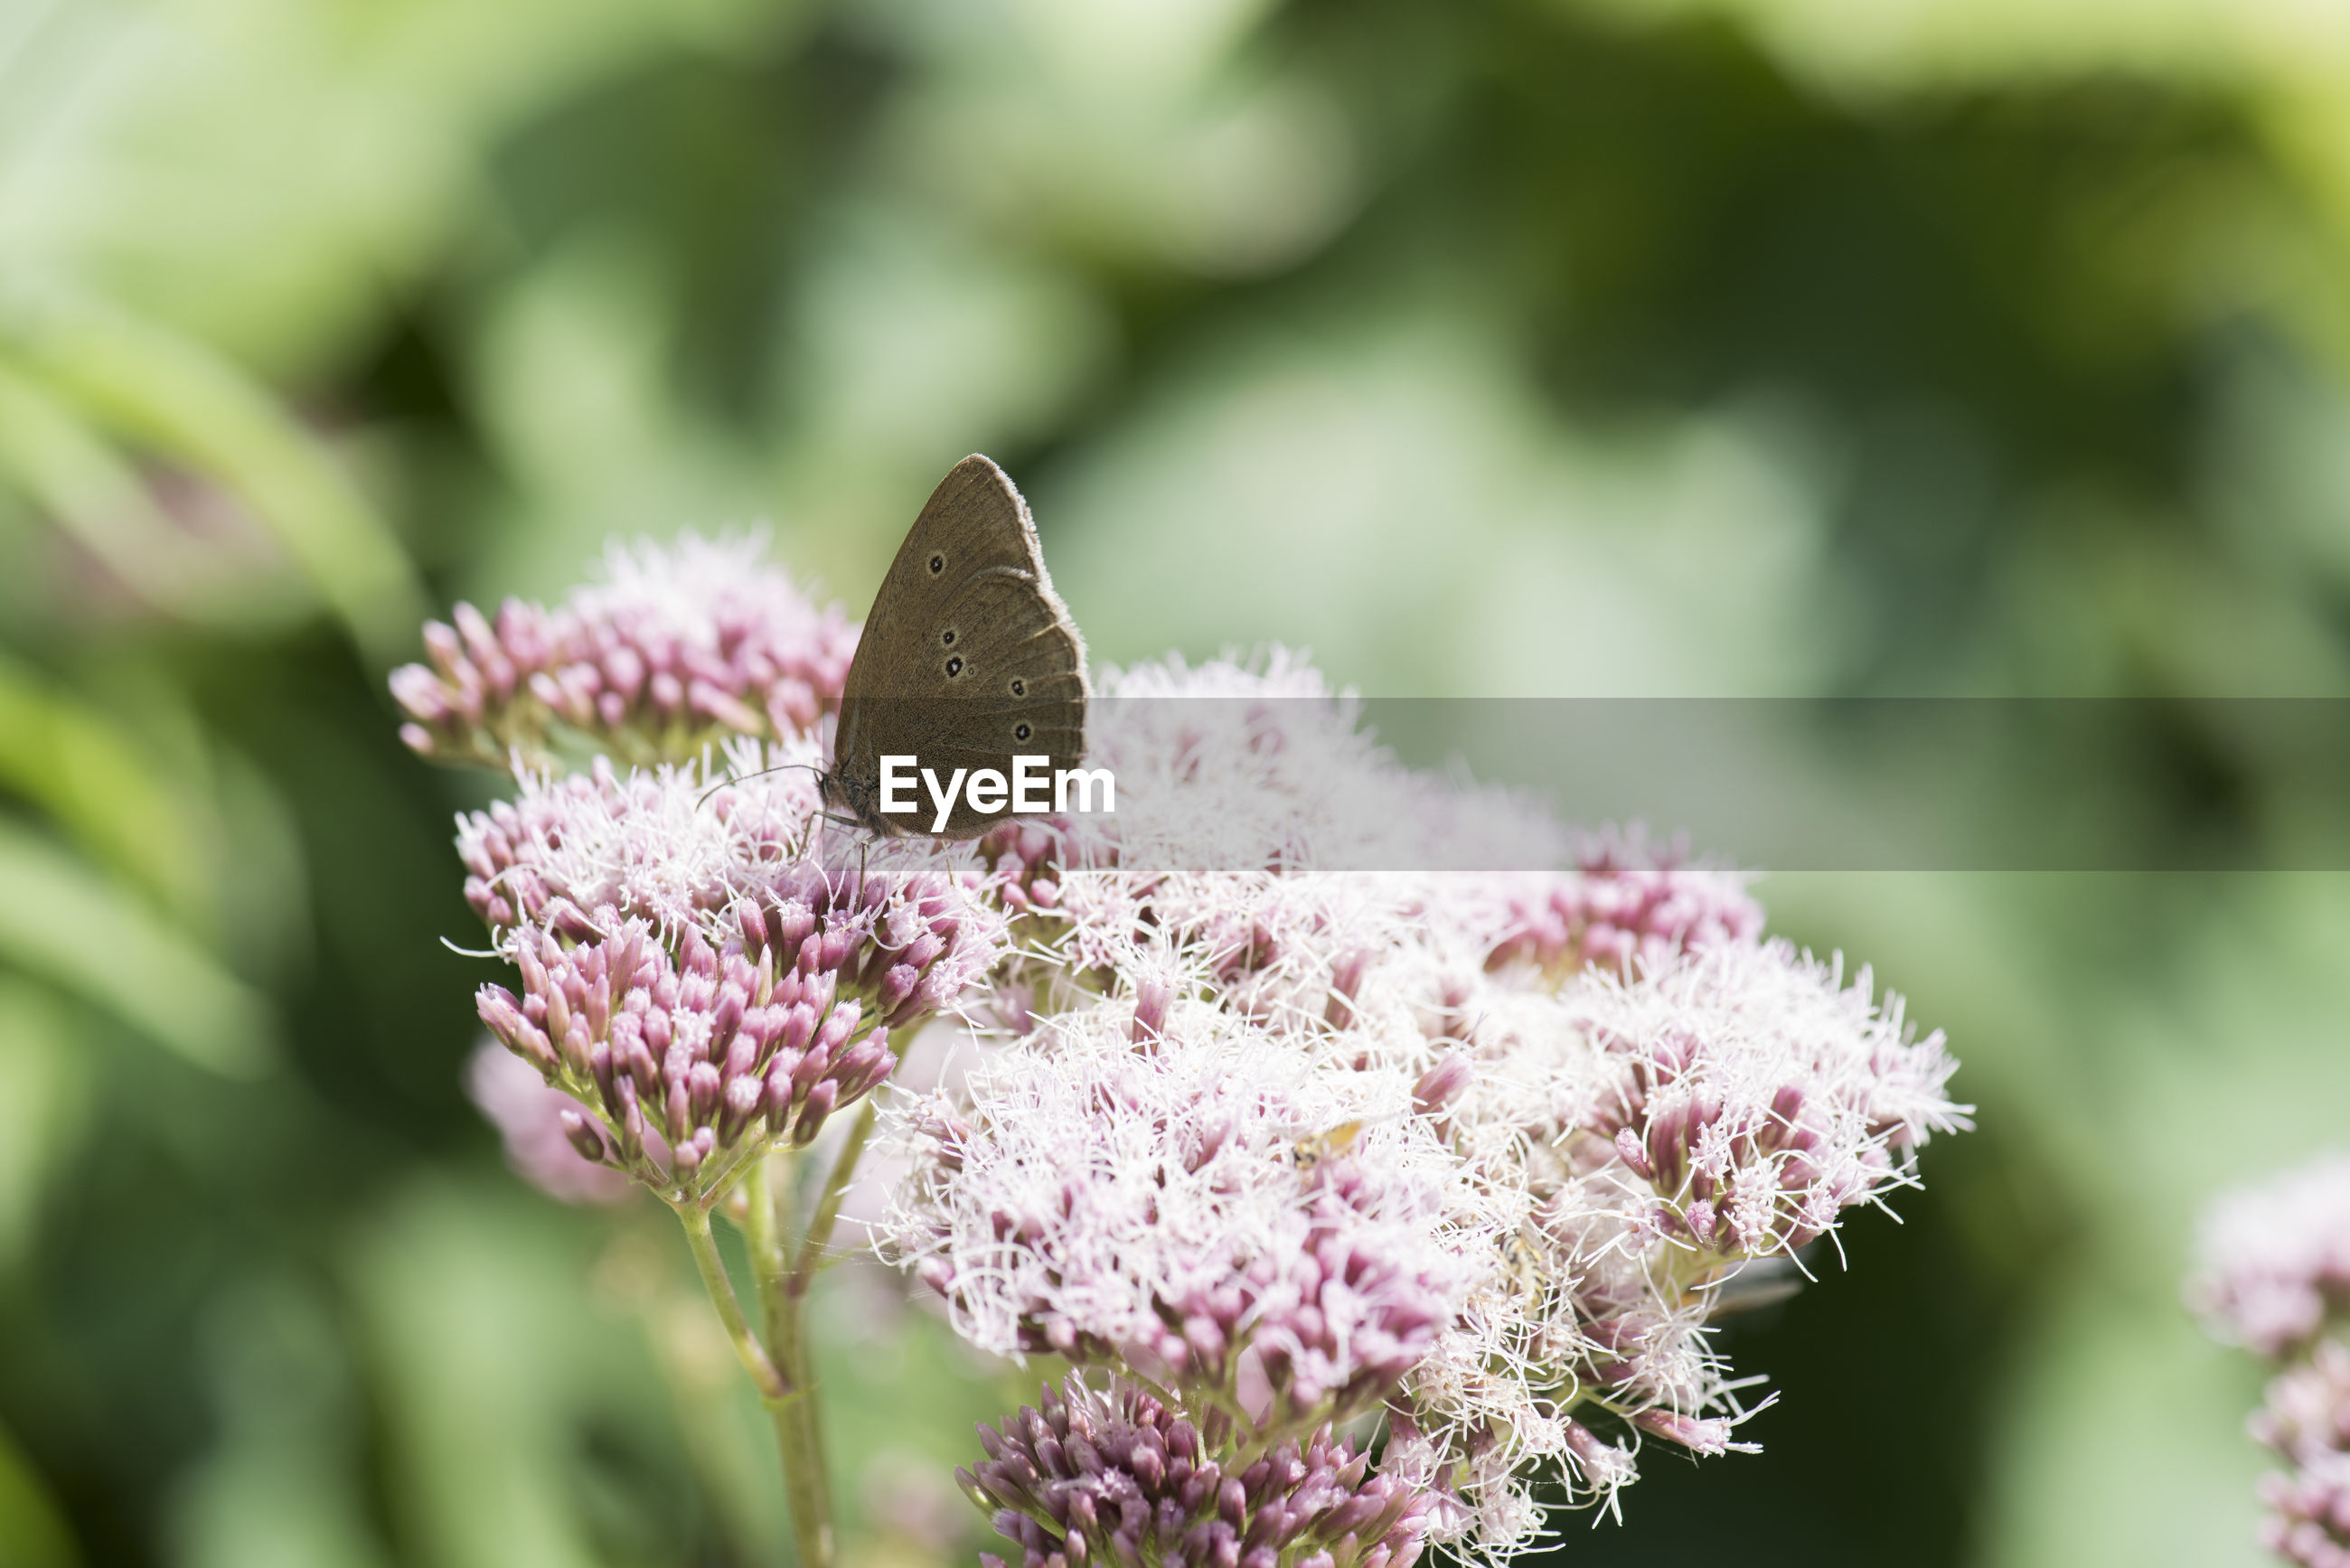 Close-up of butterfly on purple flowers growing outdoors